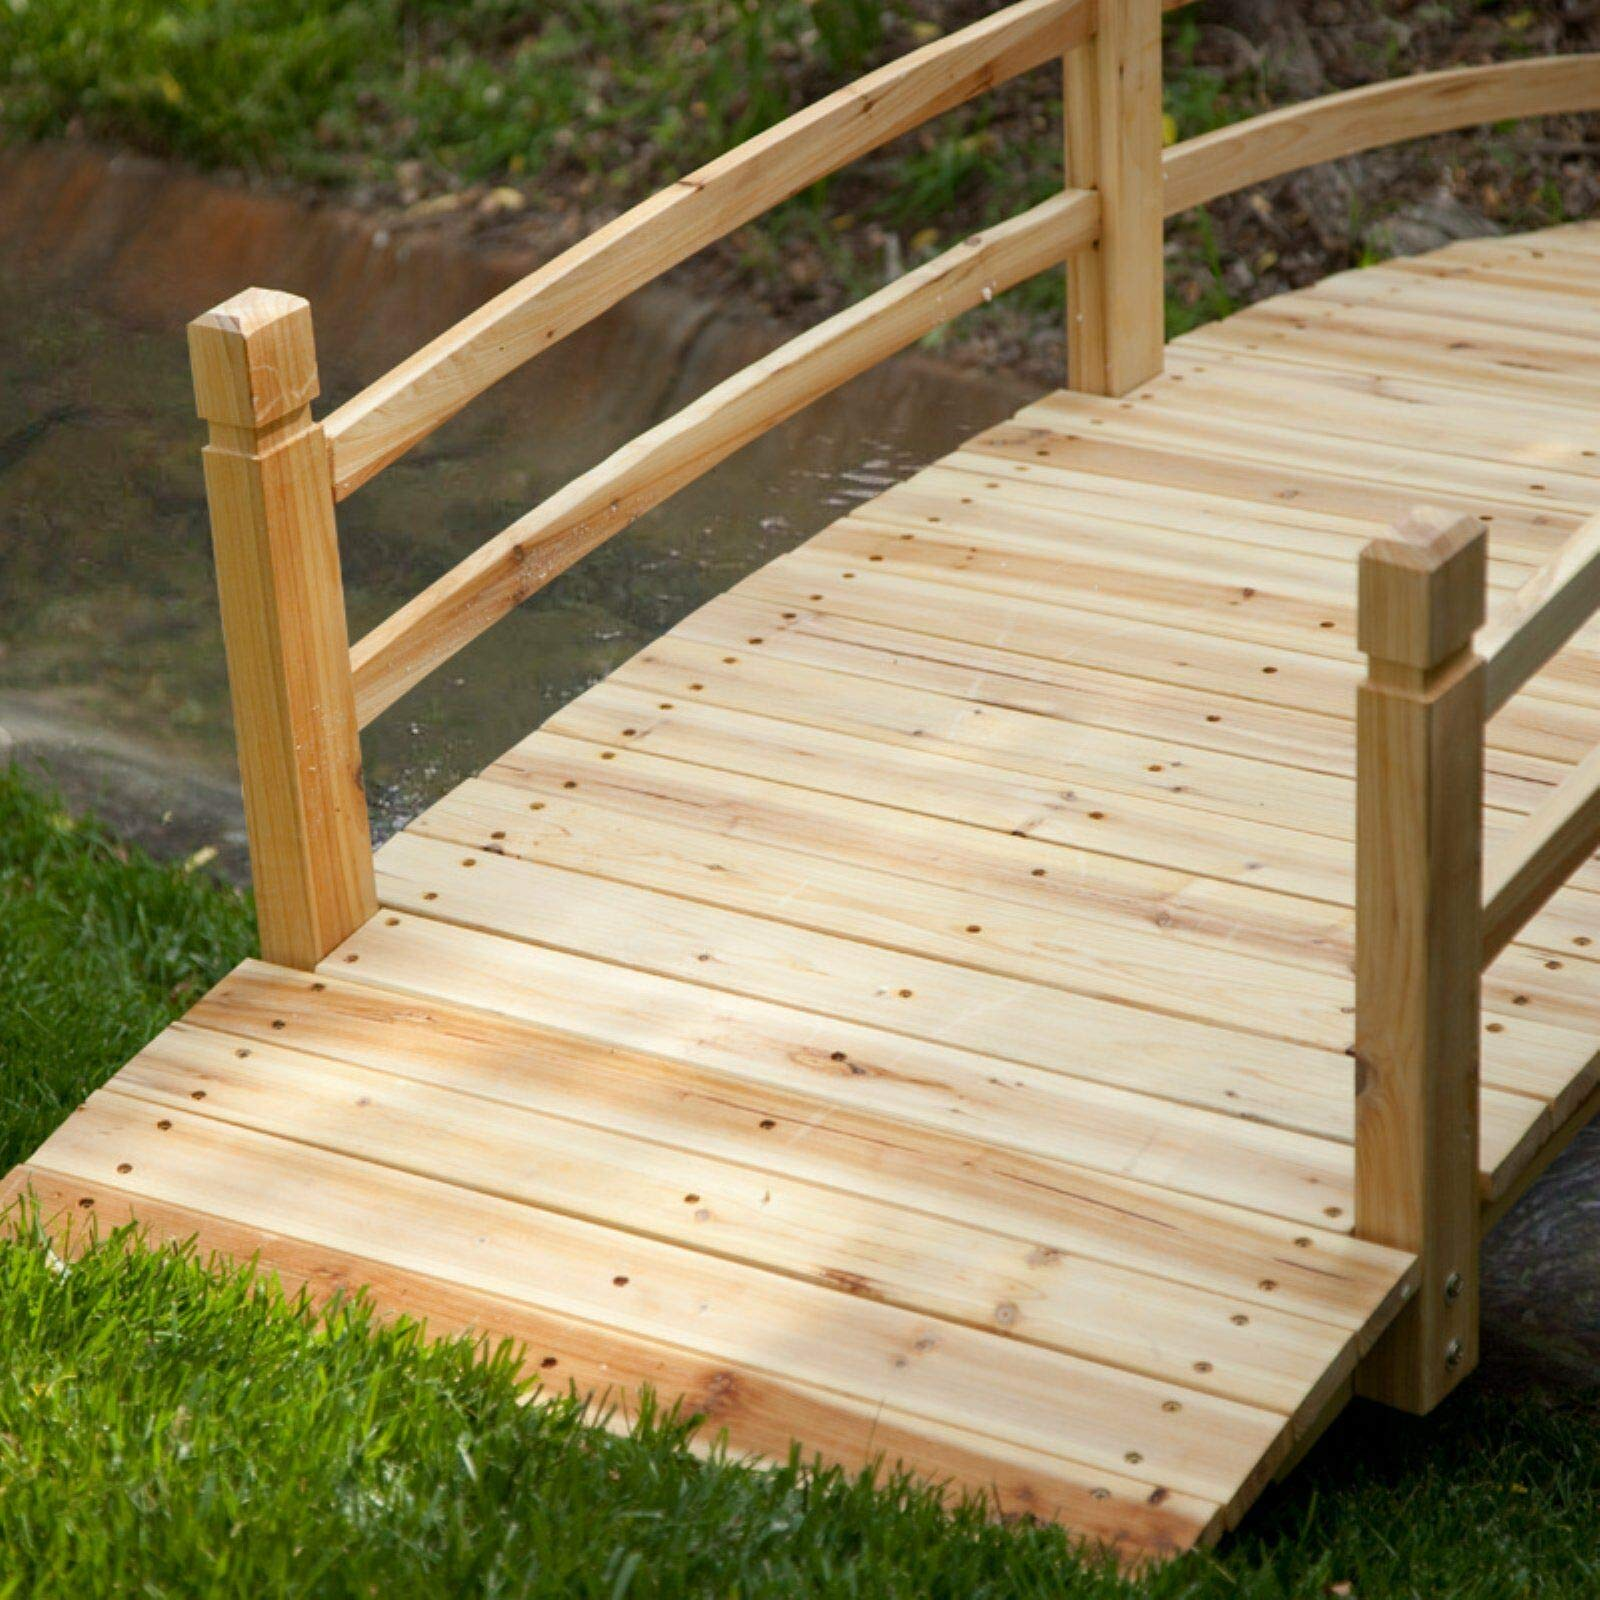 Home Improvements Natural Finish Wood 8 Foot Garden Bridge Outdoor Yard Lawn Landscaping Decor by Home Improvements (Image #3)